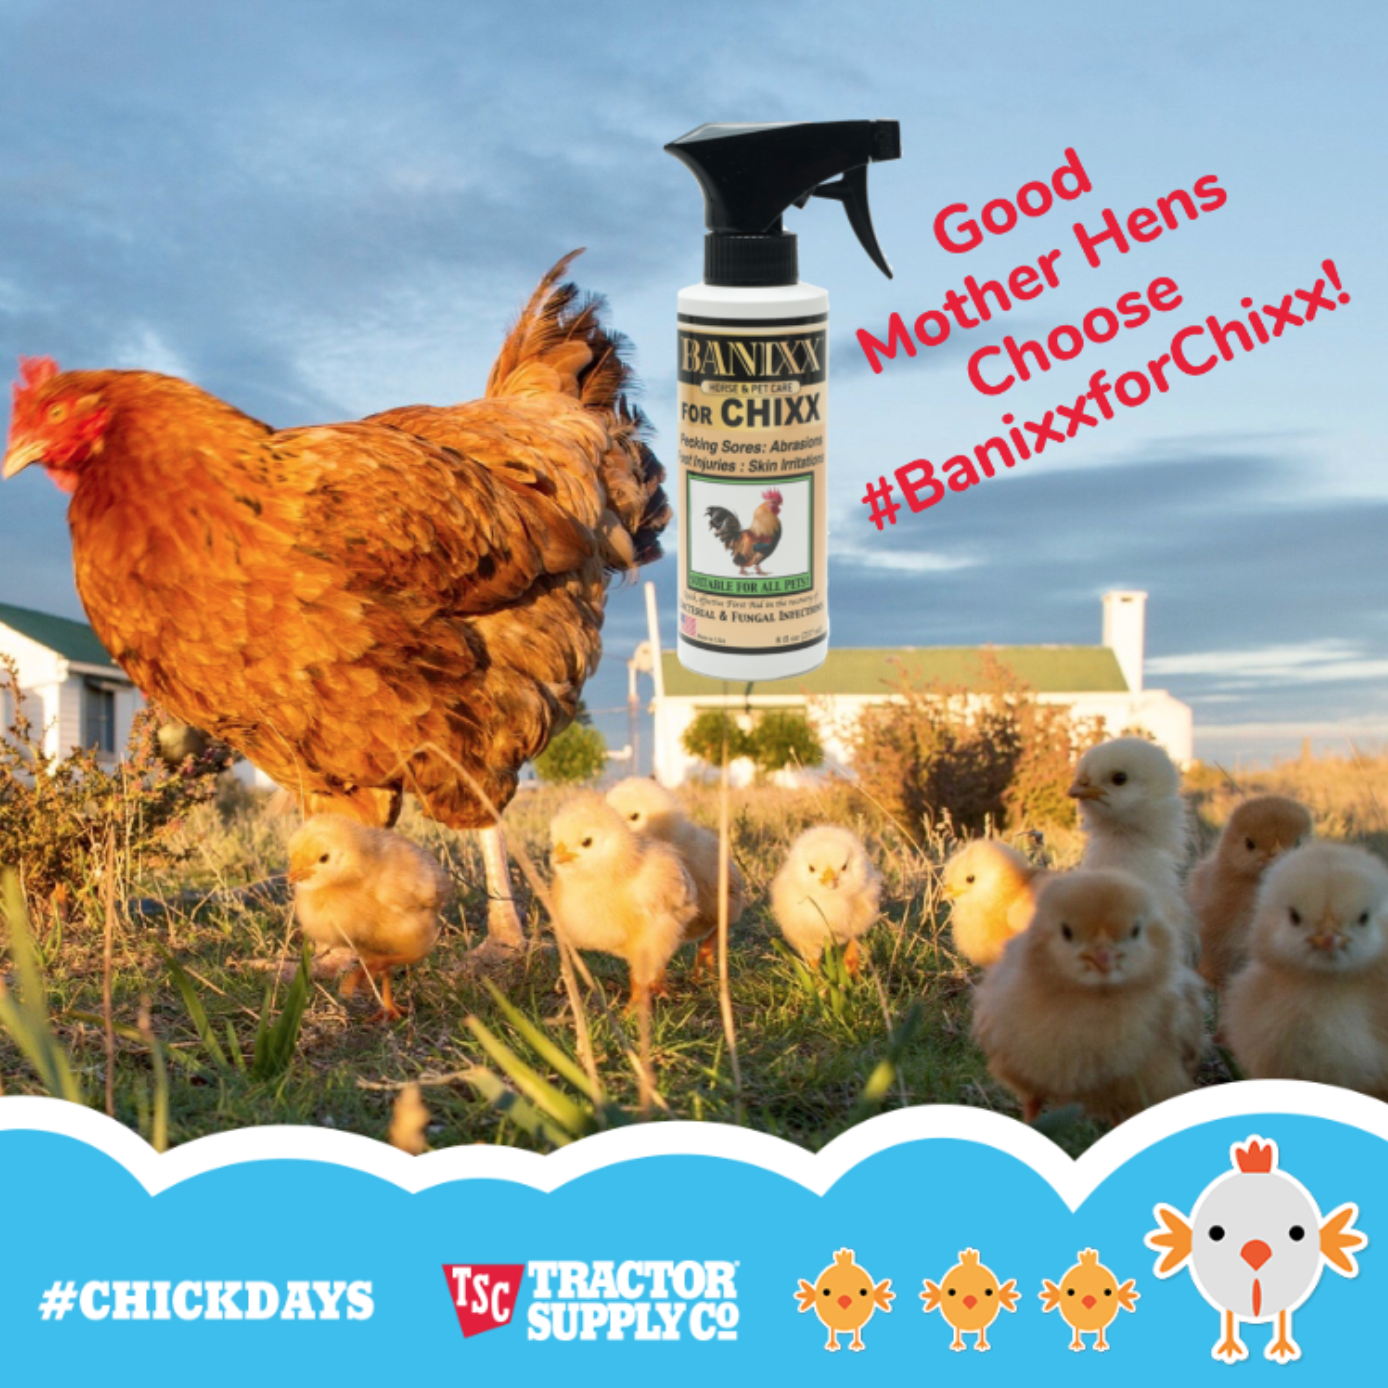 Make Your Own Tractor Supply Co Chickdays Meme Upload Your Photo Then Add Fun Stickers And Frames Everyone Fun Stickers Tractor Supply Co Tractor Supplies